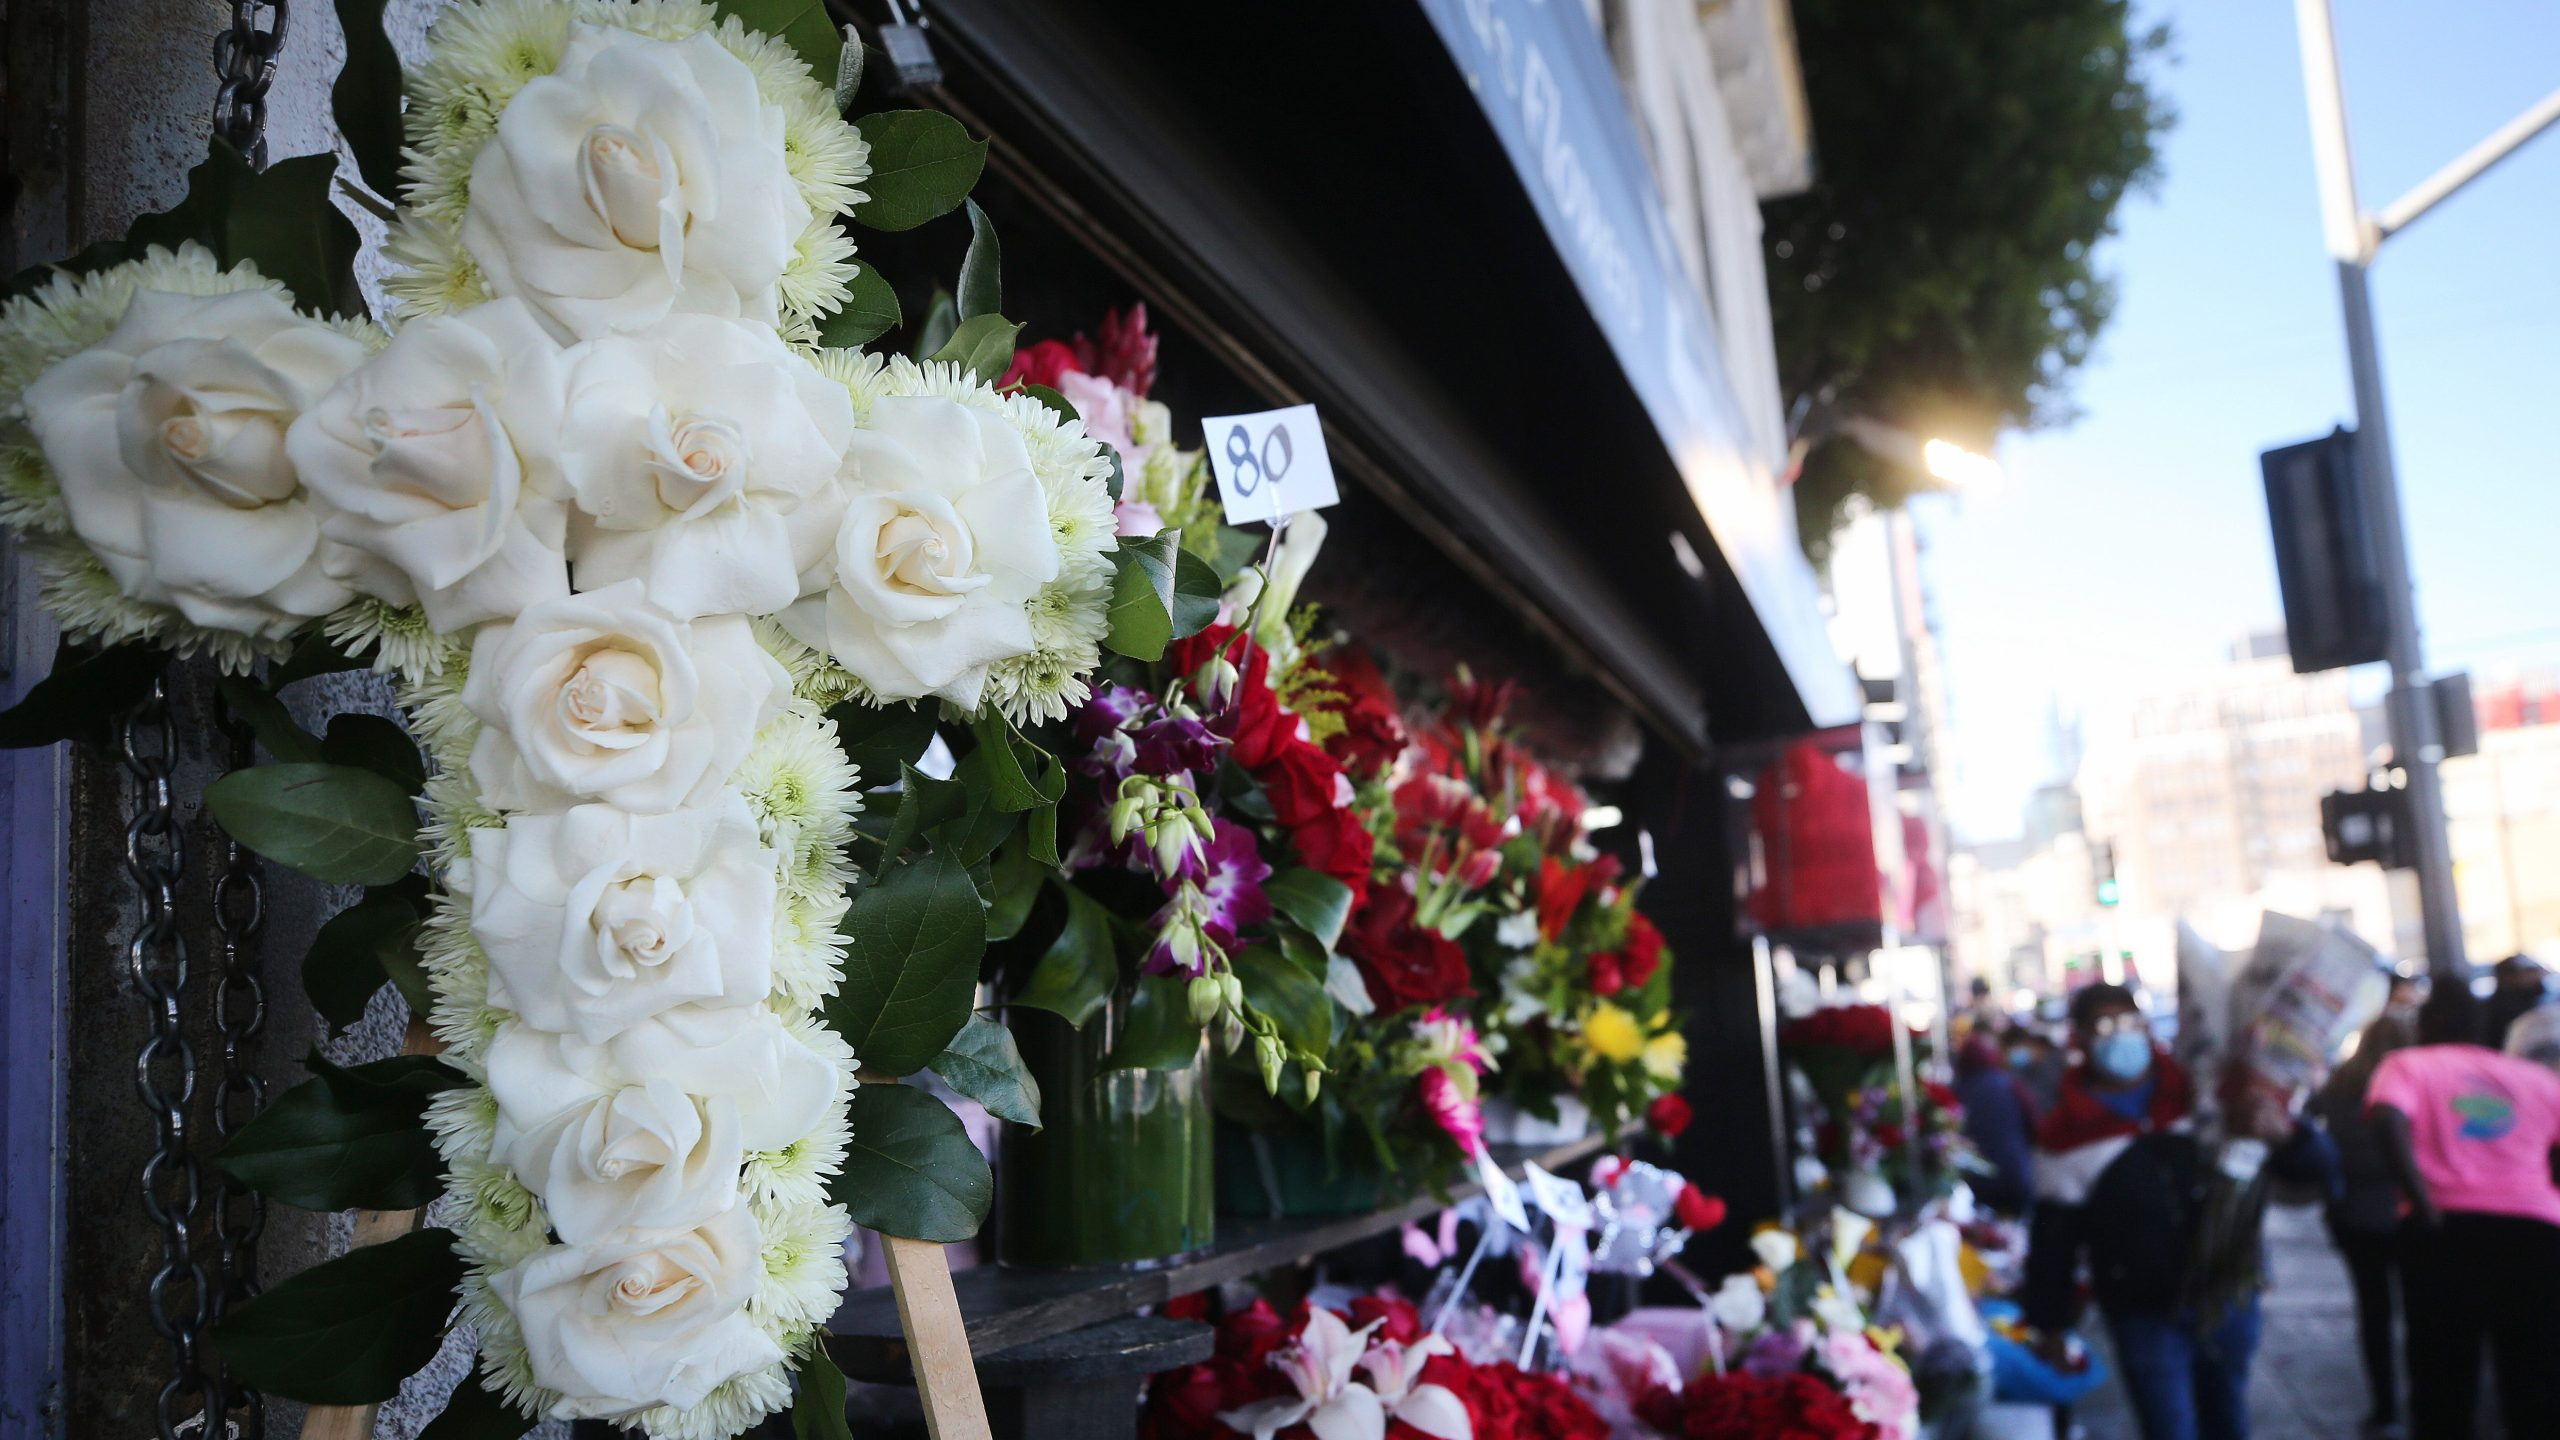 A floral cross for a funeral is displayed for sale in Los Angeles' flower district amid the COVID-19 pandemic on Feb. 12, 2021. (Mario Tama / Getty Images)